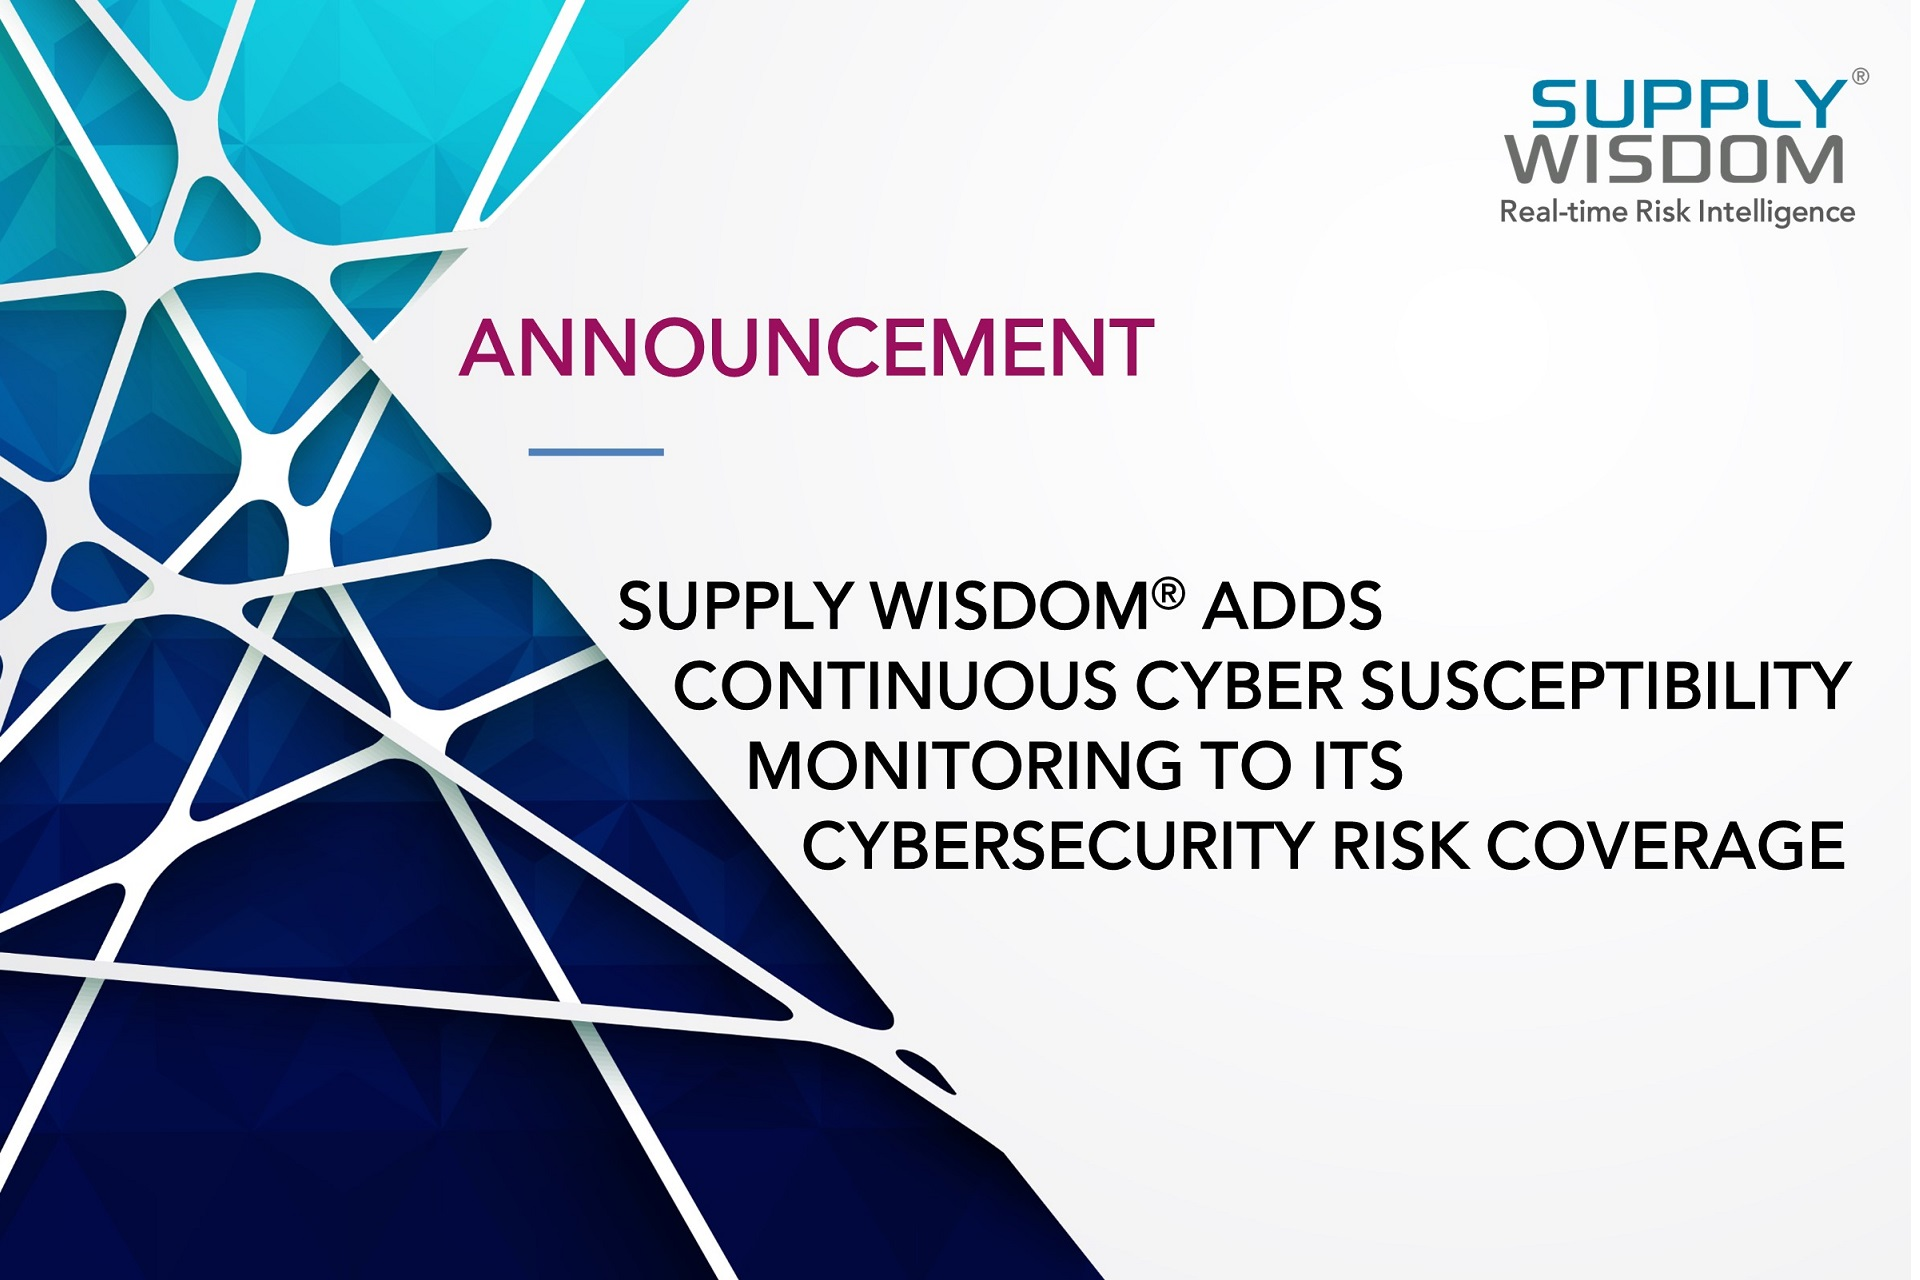 Supply Wisdom Adds Continuous Cyber Susceptibility Monitoring to Cybersecurity Risk Coverage